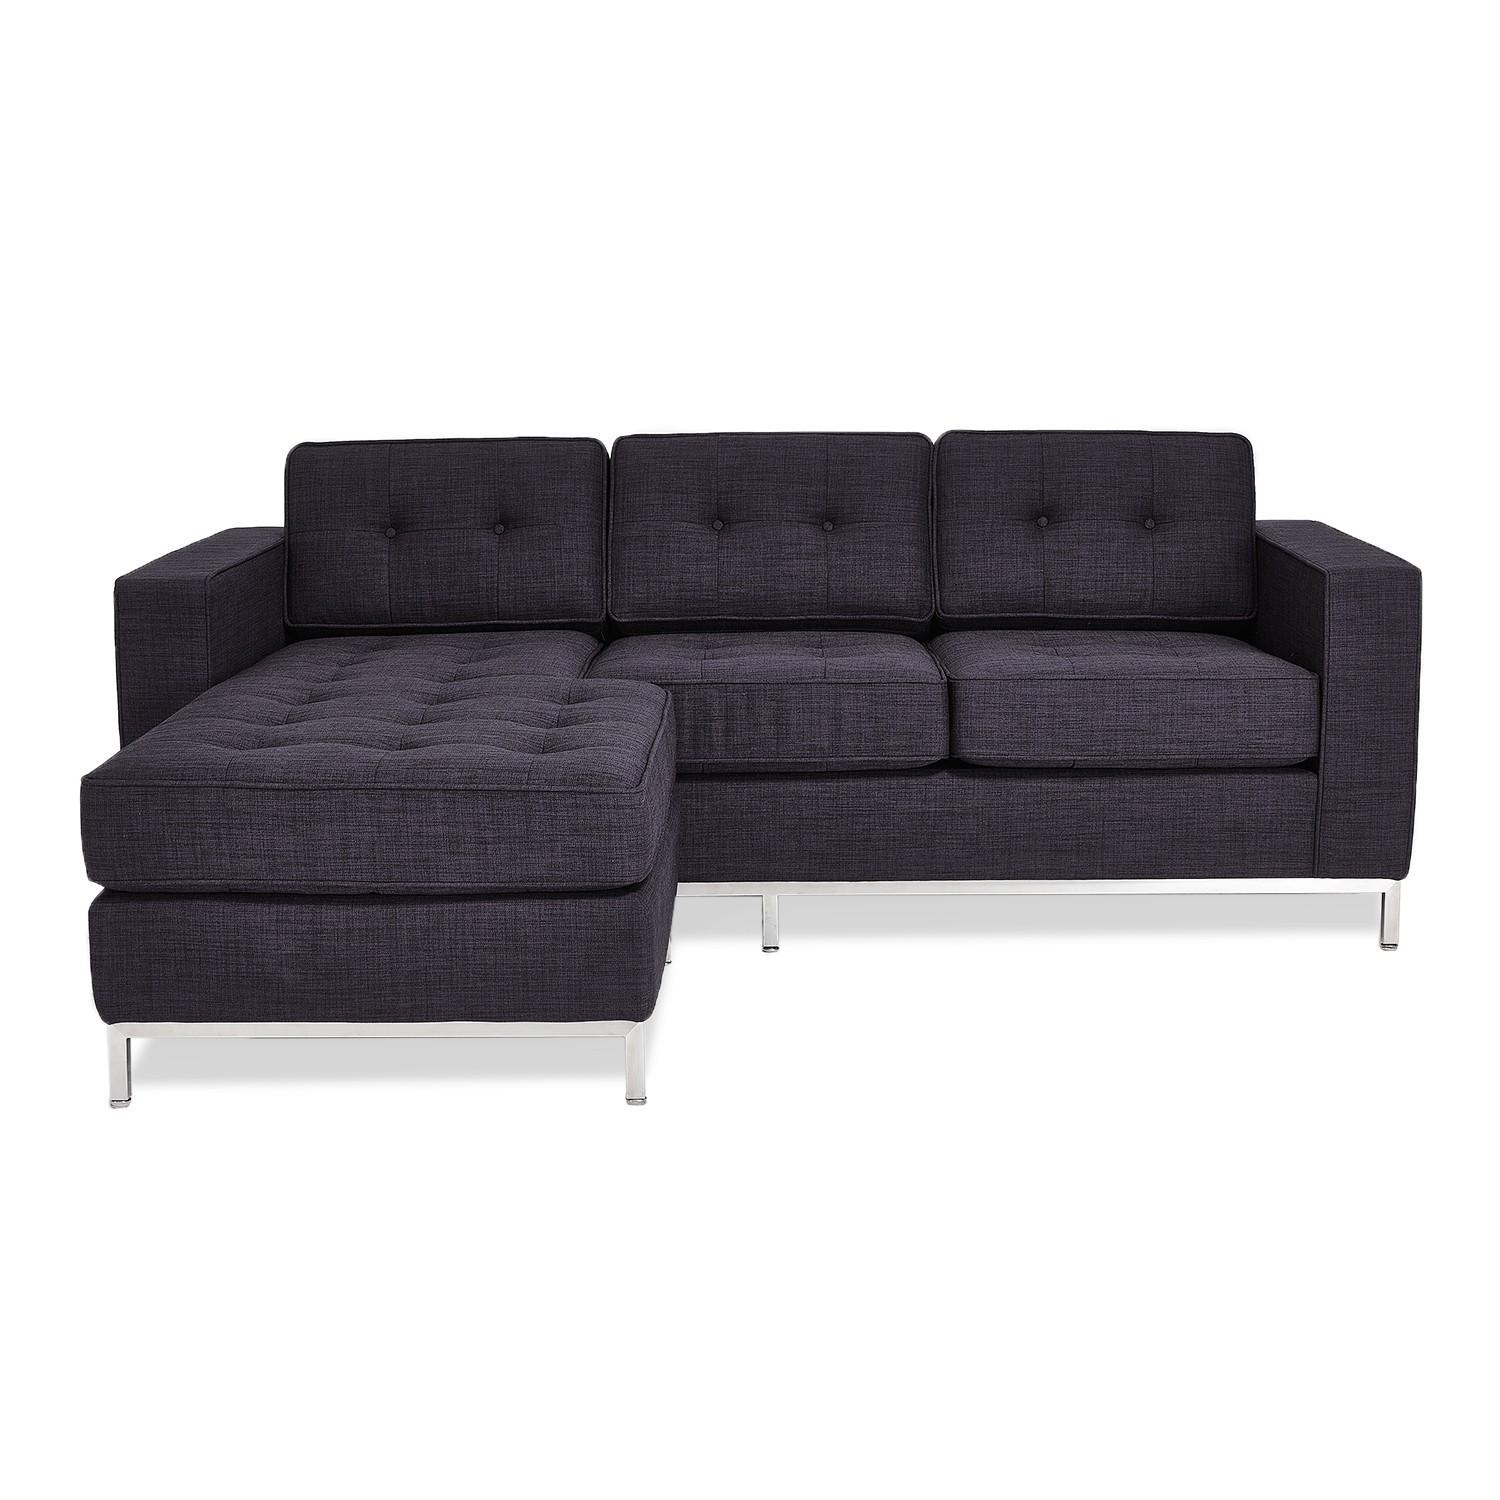 Gus* Modern Jane Loft Bi Sectional – Abc Carpet & Home With Regard To Jane Bi Sectional Sofa (View 9 of 20)